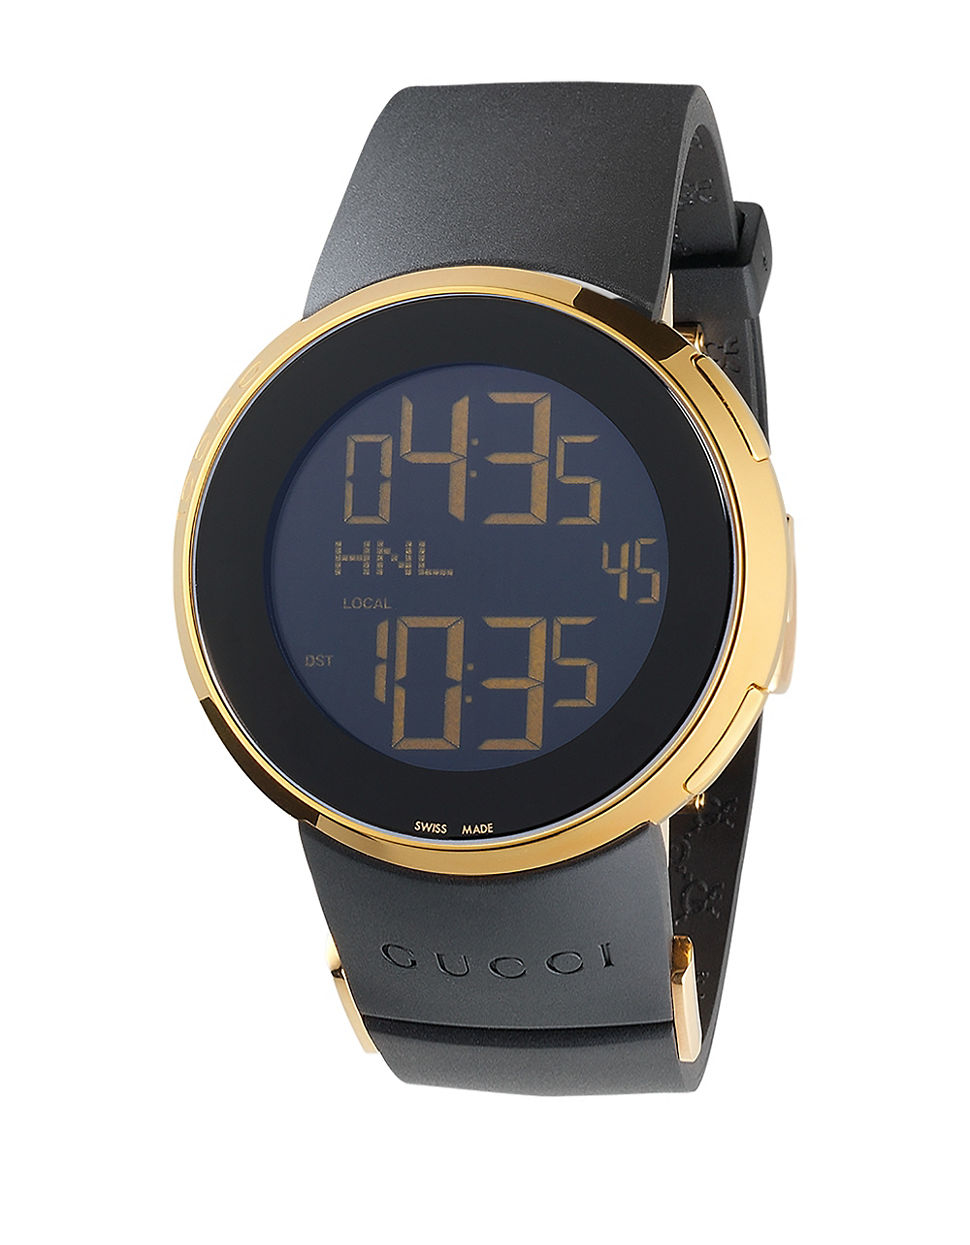 Gucci Swiss Made Digital Tm 501 Leather Strap Watch in ...